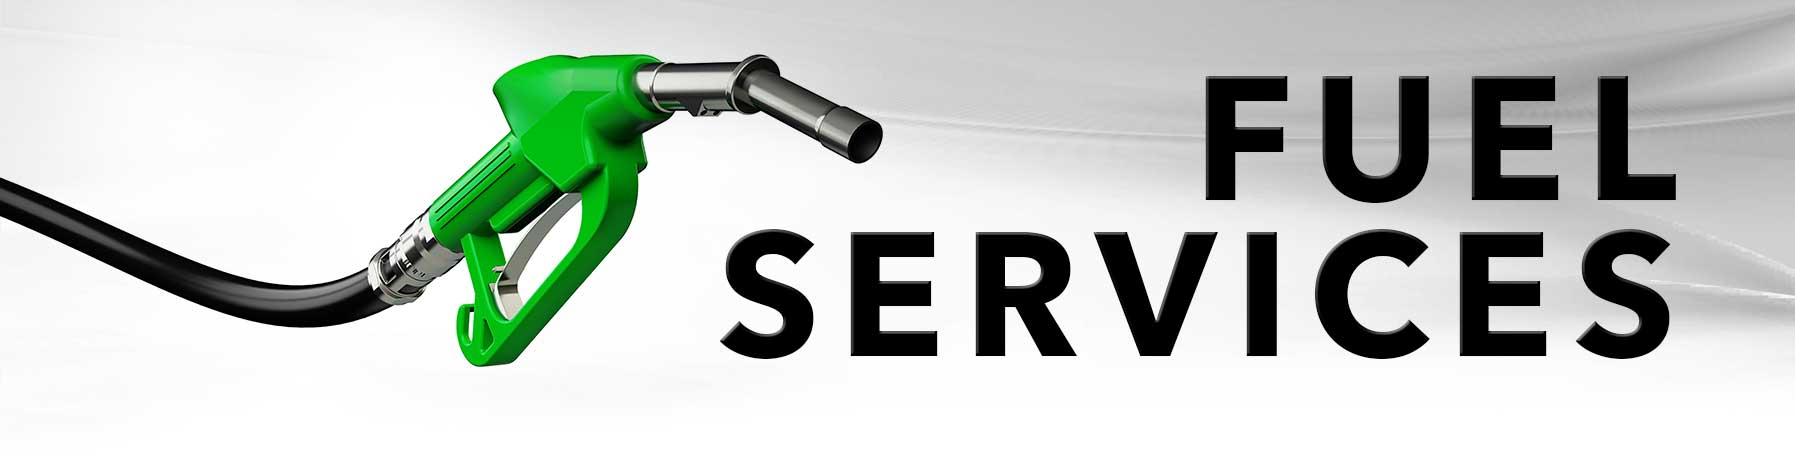 we provide fuel services